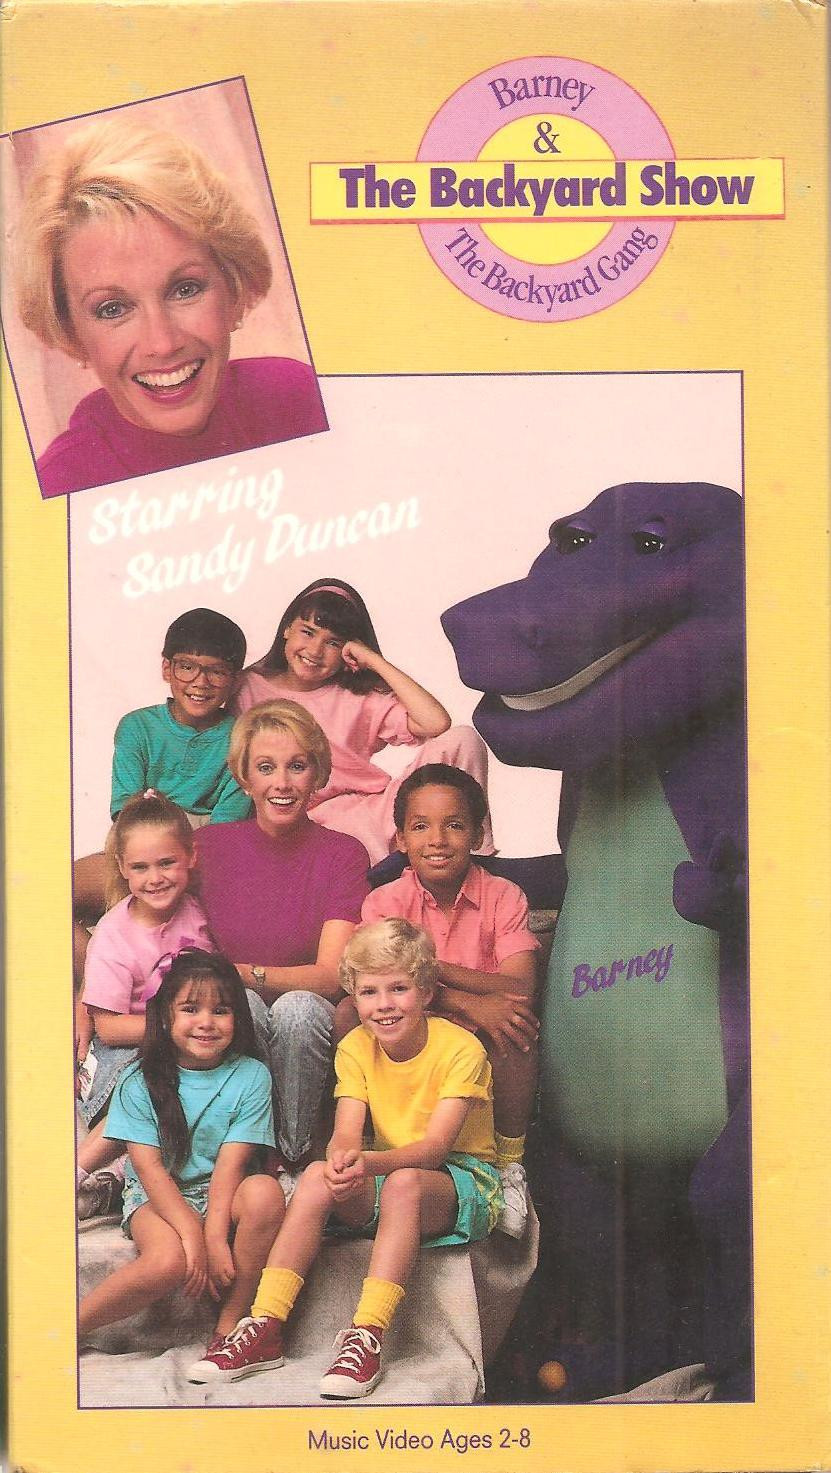 Best ideas about Barney The Backyard Show . Save or Pin Image V jgvpe Barney Wiki Now.